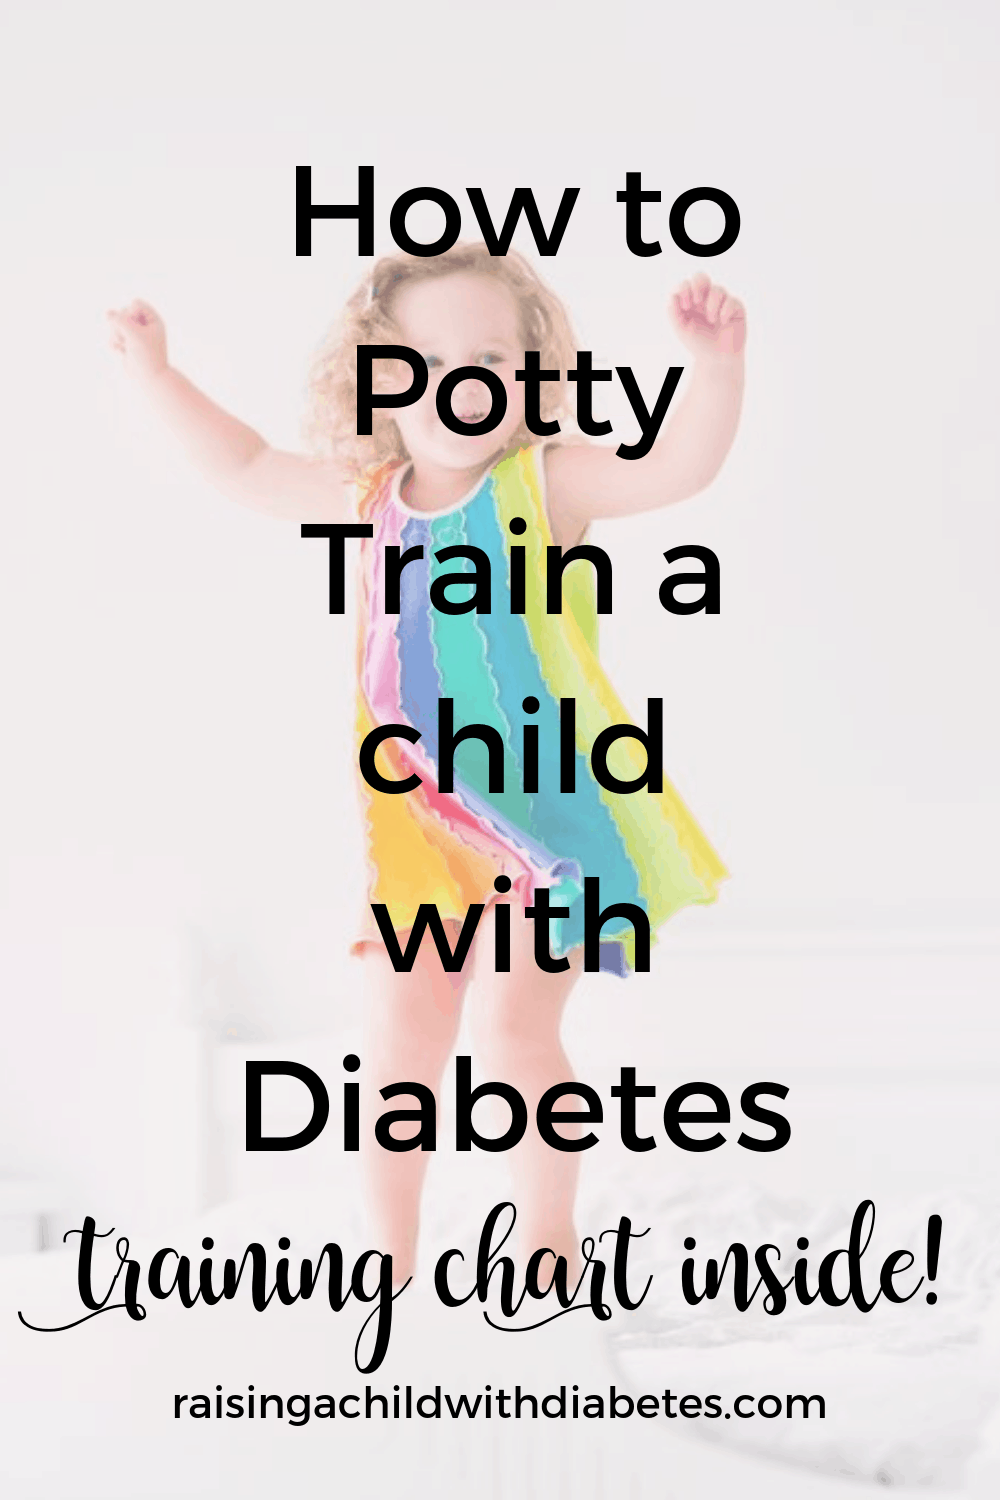 Let's talk potty training! Only the mere thought of this phrase gave me chills! More so, because of my daughter's condition of type 1 diabetes.I am going to tell you, it was NOT an easy task. Until this day, we still struggle with nighttime potty training, but for the moment we are managing the issue with overnight diapers.